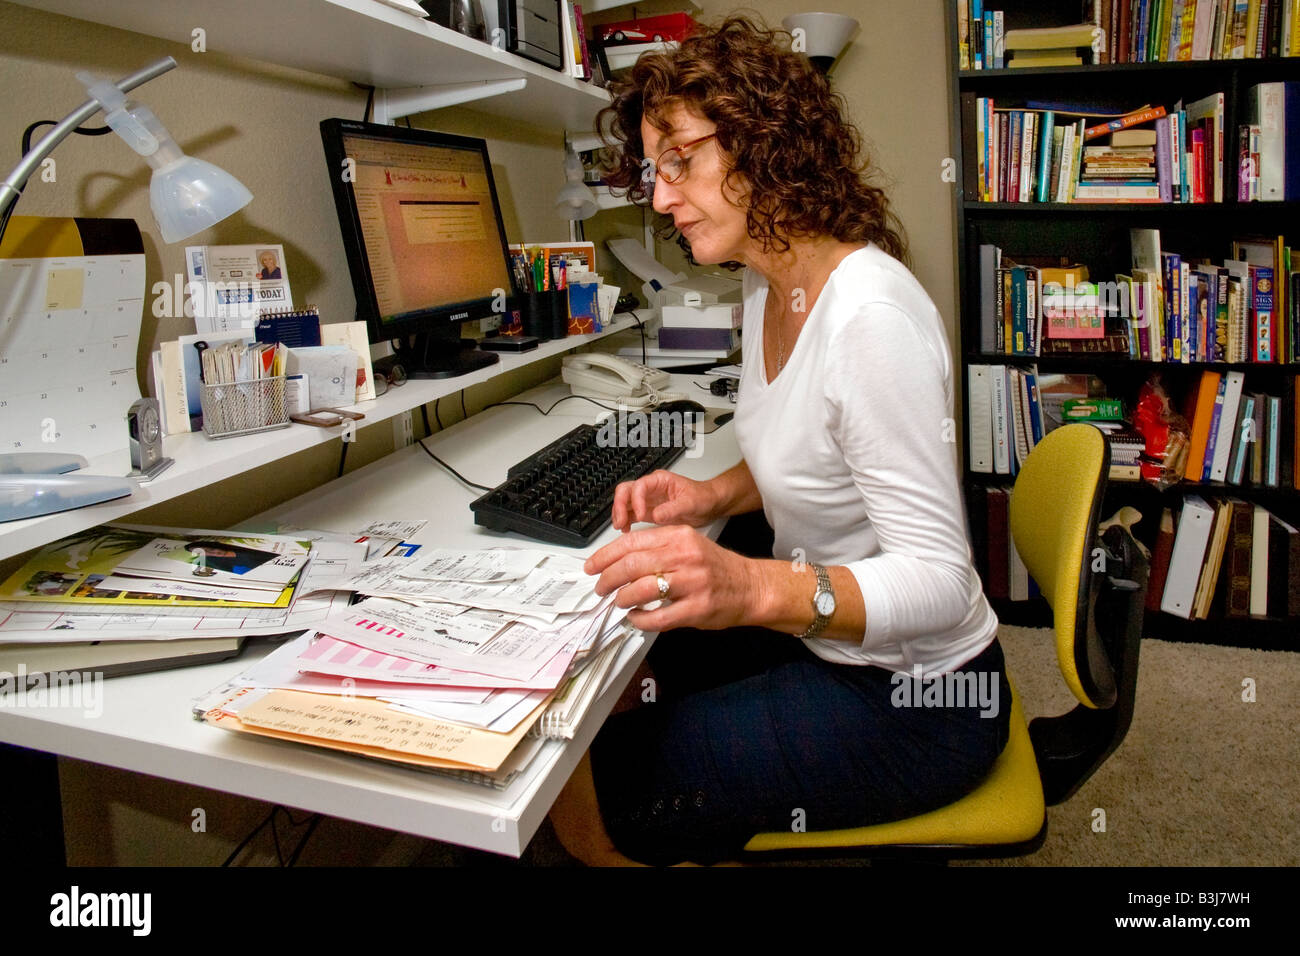 A 50 year old self employed woman works in her home office in Mission Viejo California Stock Photo